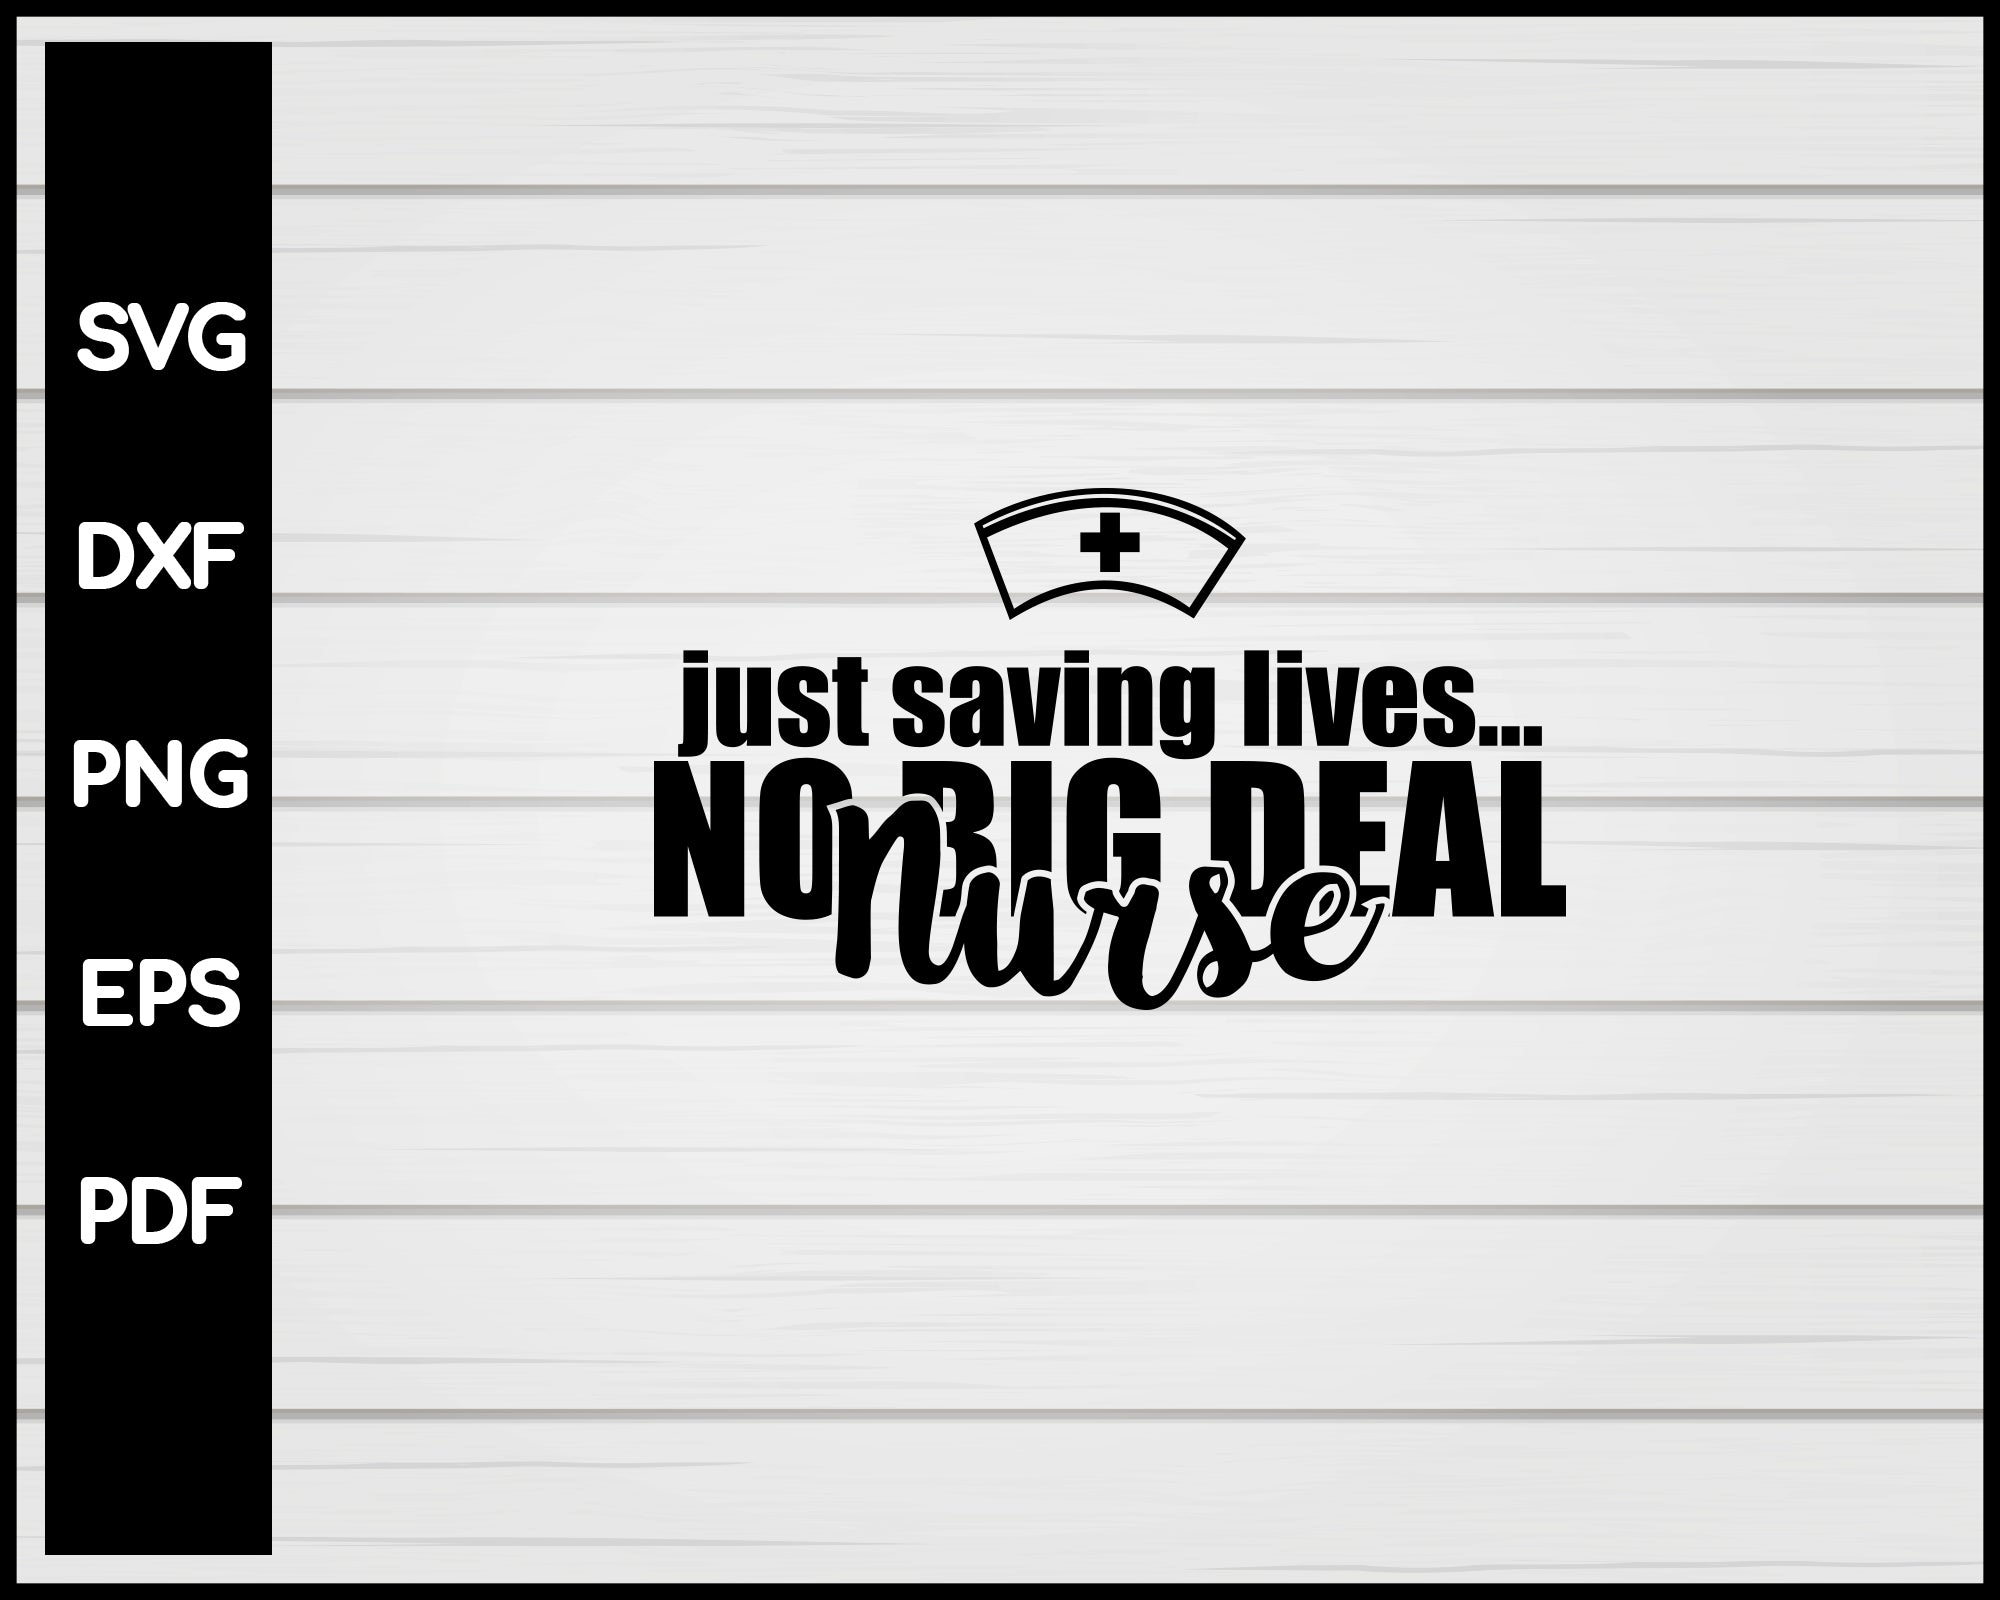 Just Saving Lives No Big Deal Nurse svg Cut File For Cricut Silhouette eps png dxf Printable Files